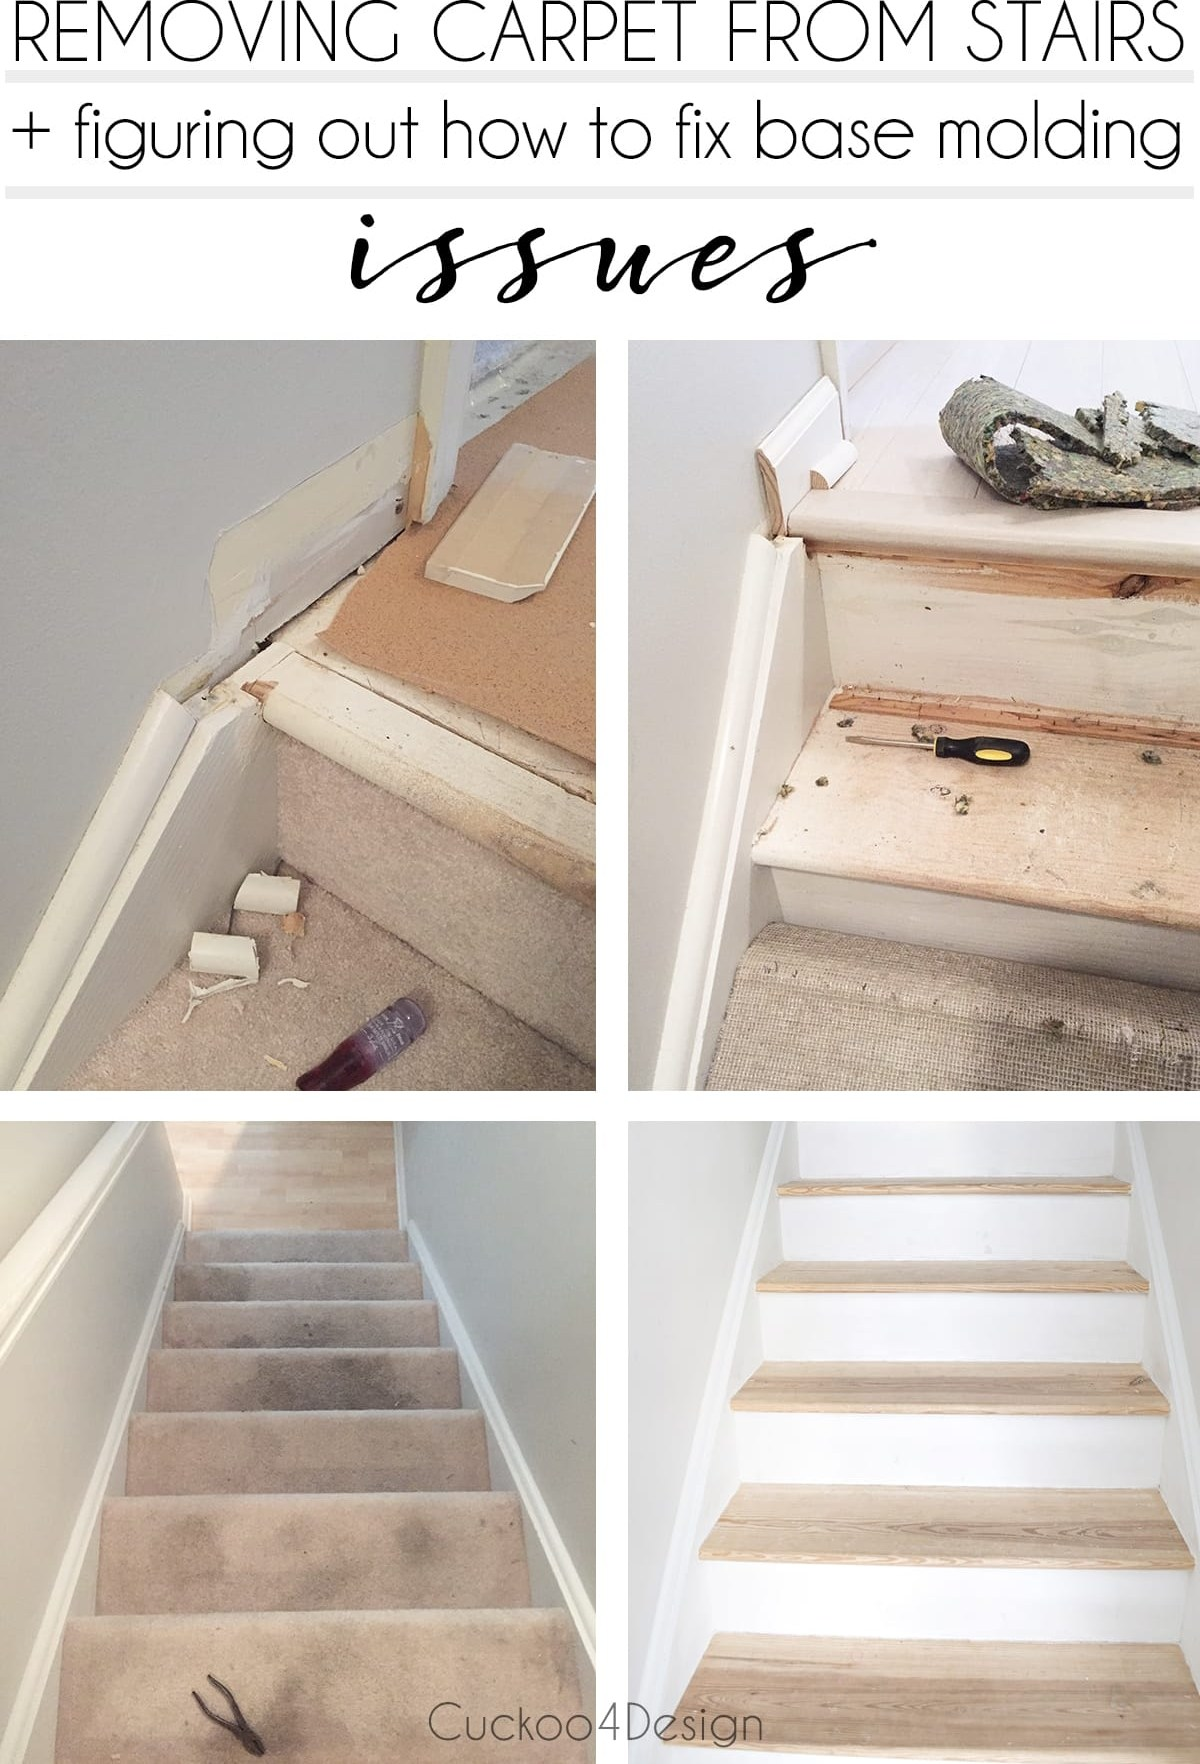 Removing Carpet From Stairs Cuckoo4Design | Carpet Strips For Steps | Border | Carpeted | Adhesive | Builder Grade | Victorian